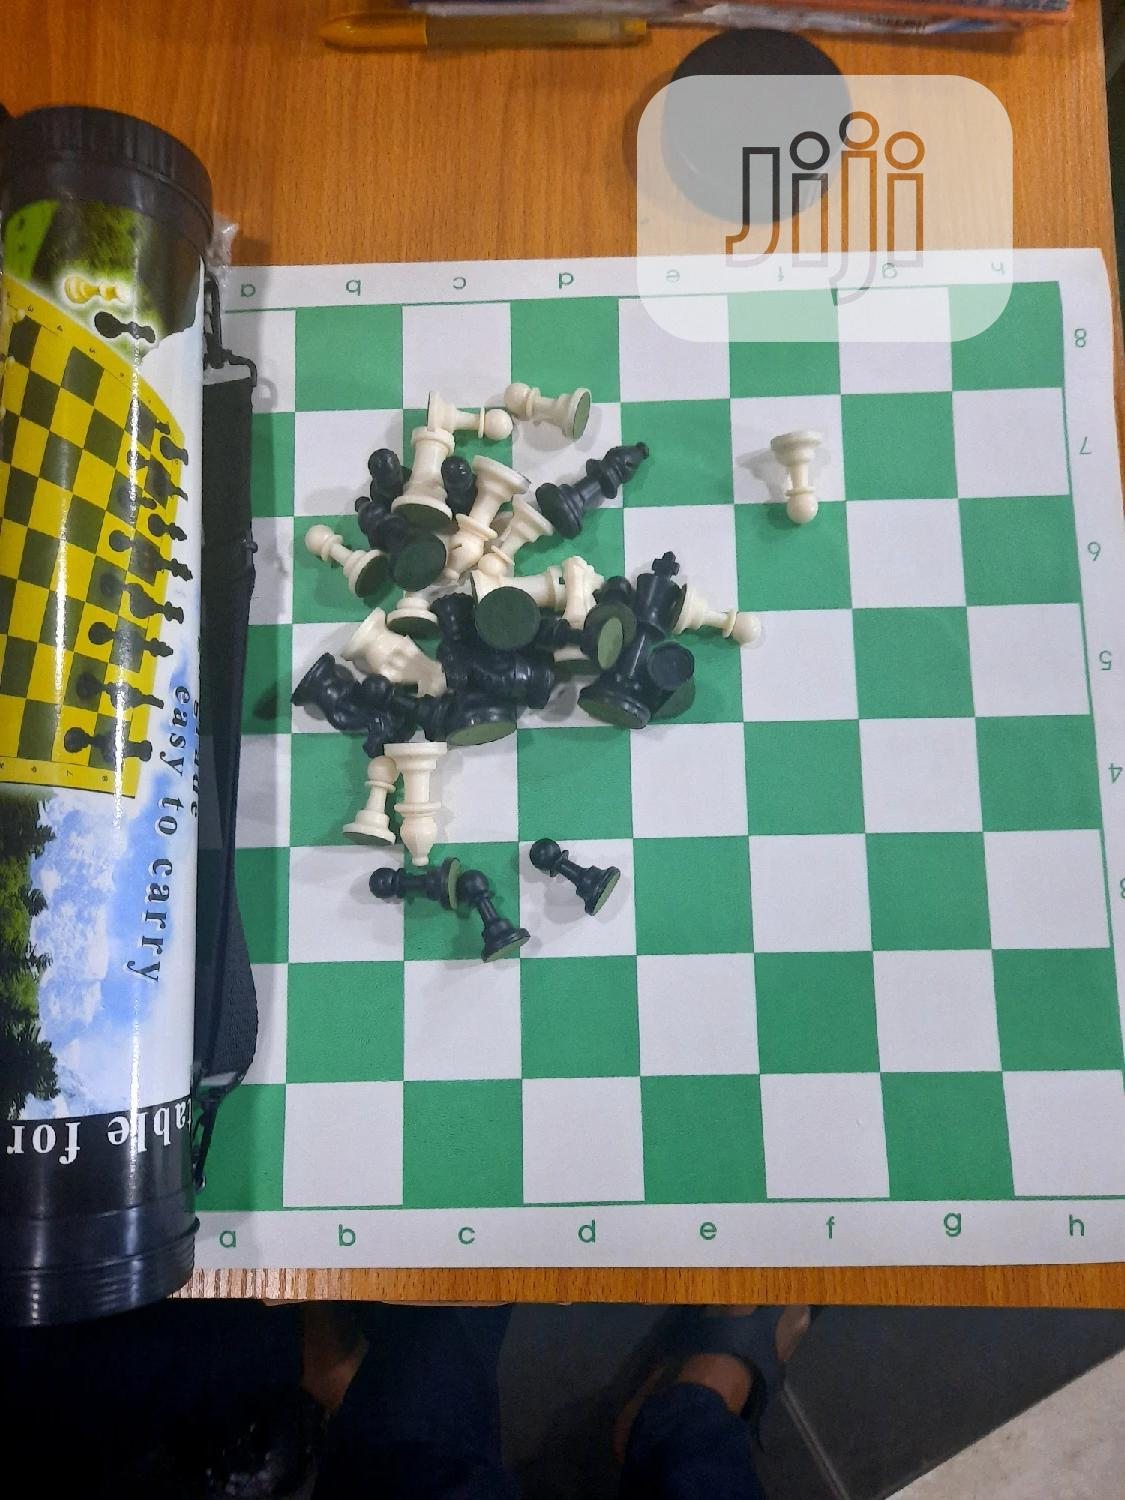 Professional Cup Chess Big Size | Books & Games for sale in Surulere, Lagos State, Nigeria